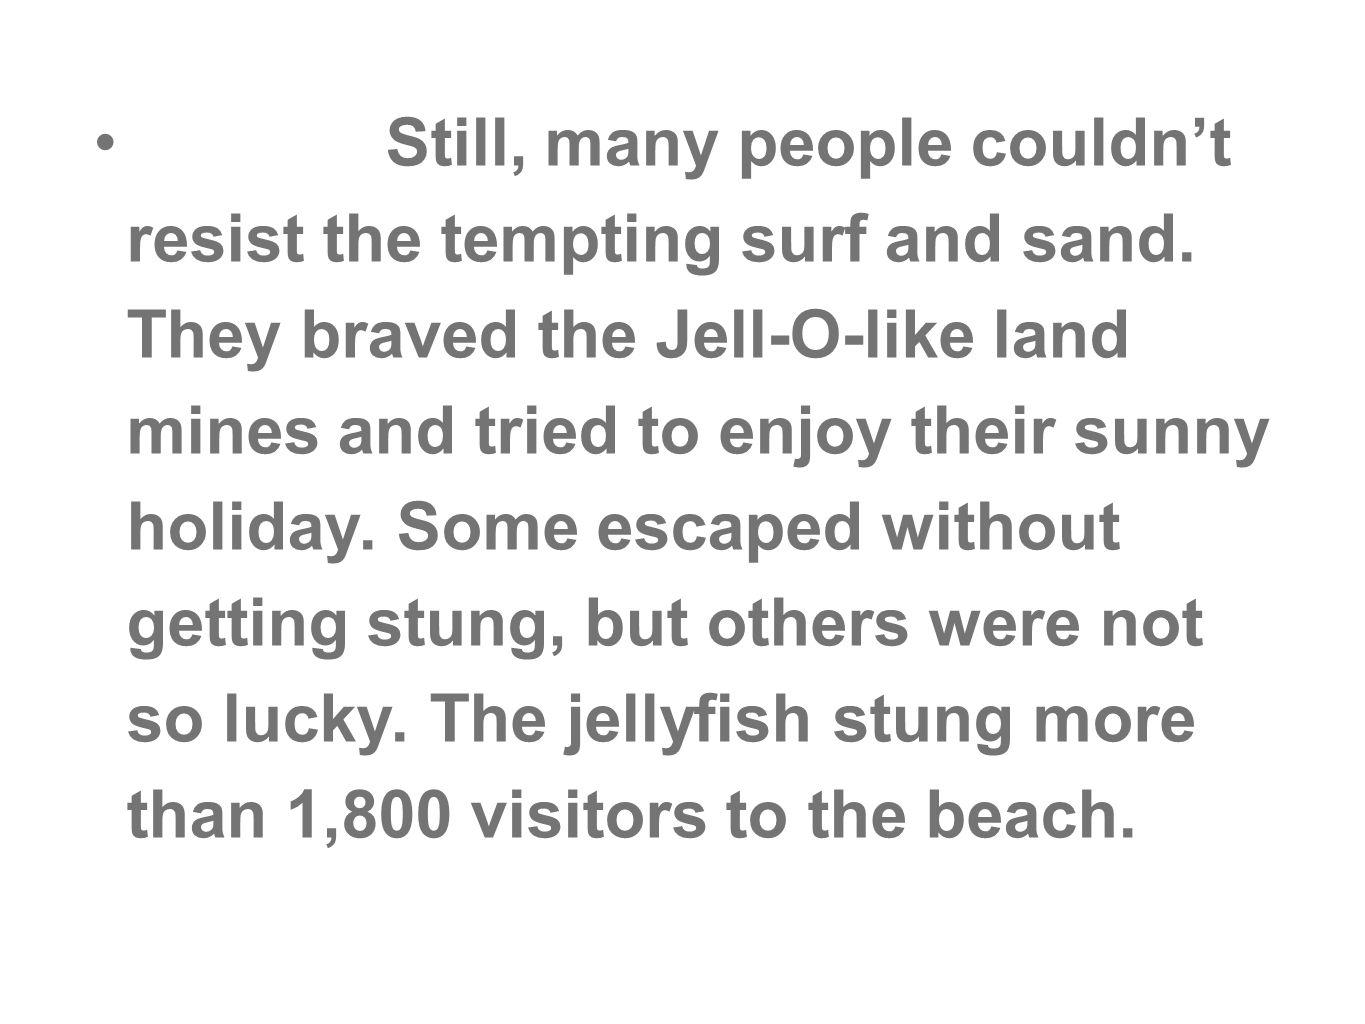 Still, many people couldnt resist the tempting surf and sand. They braved the Jell-O-like land mines and tried to enjoy their sunny holiday. Some esca